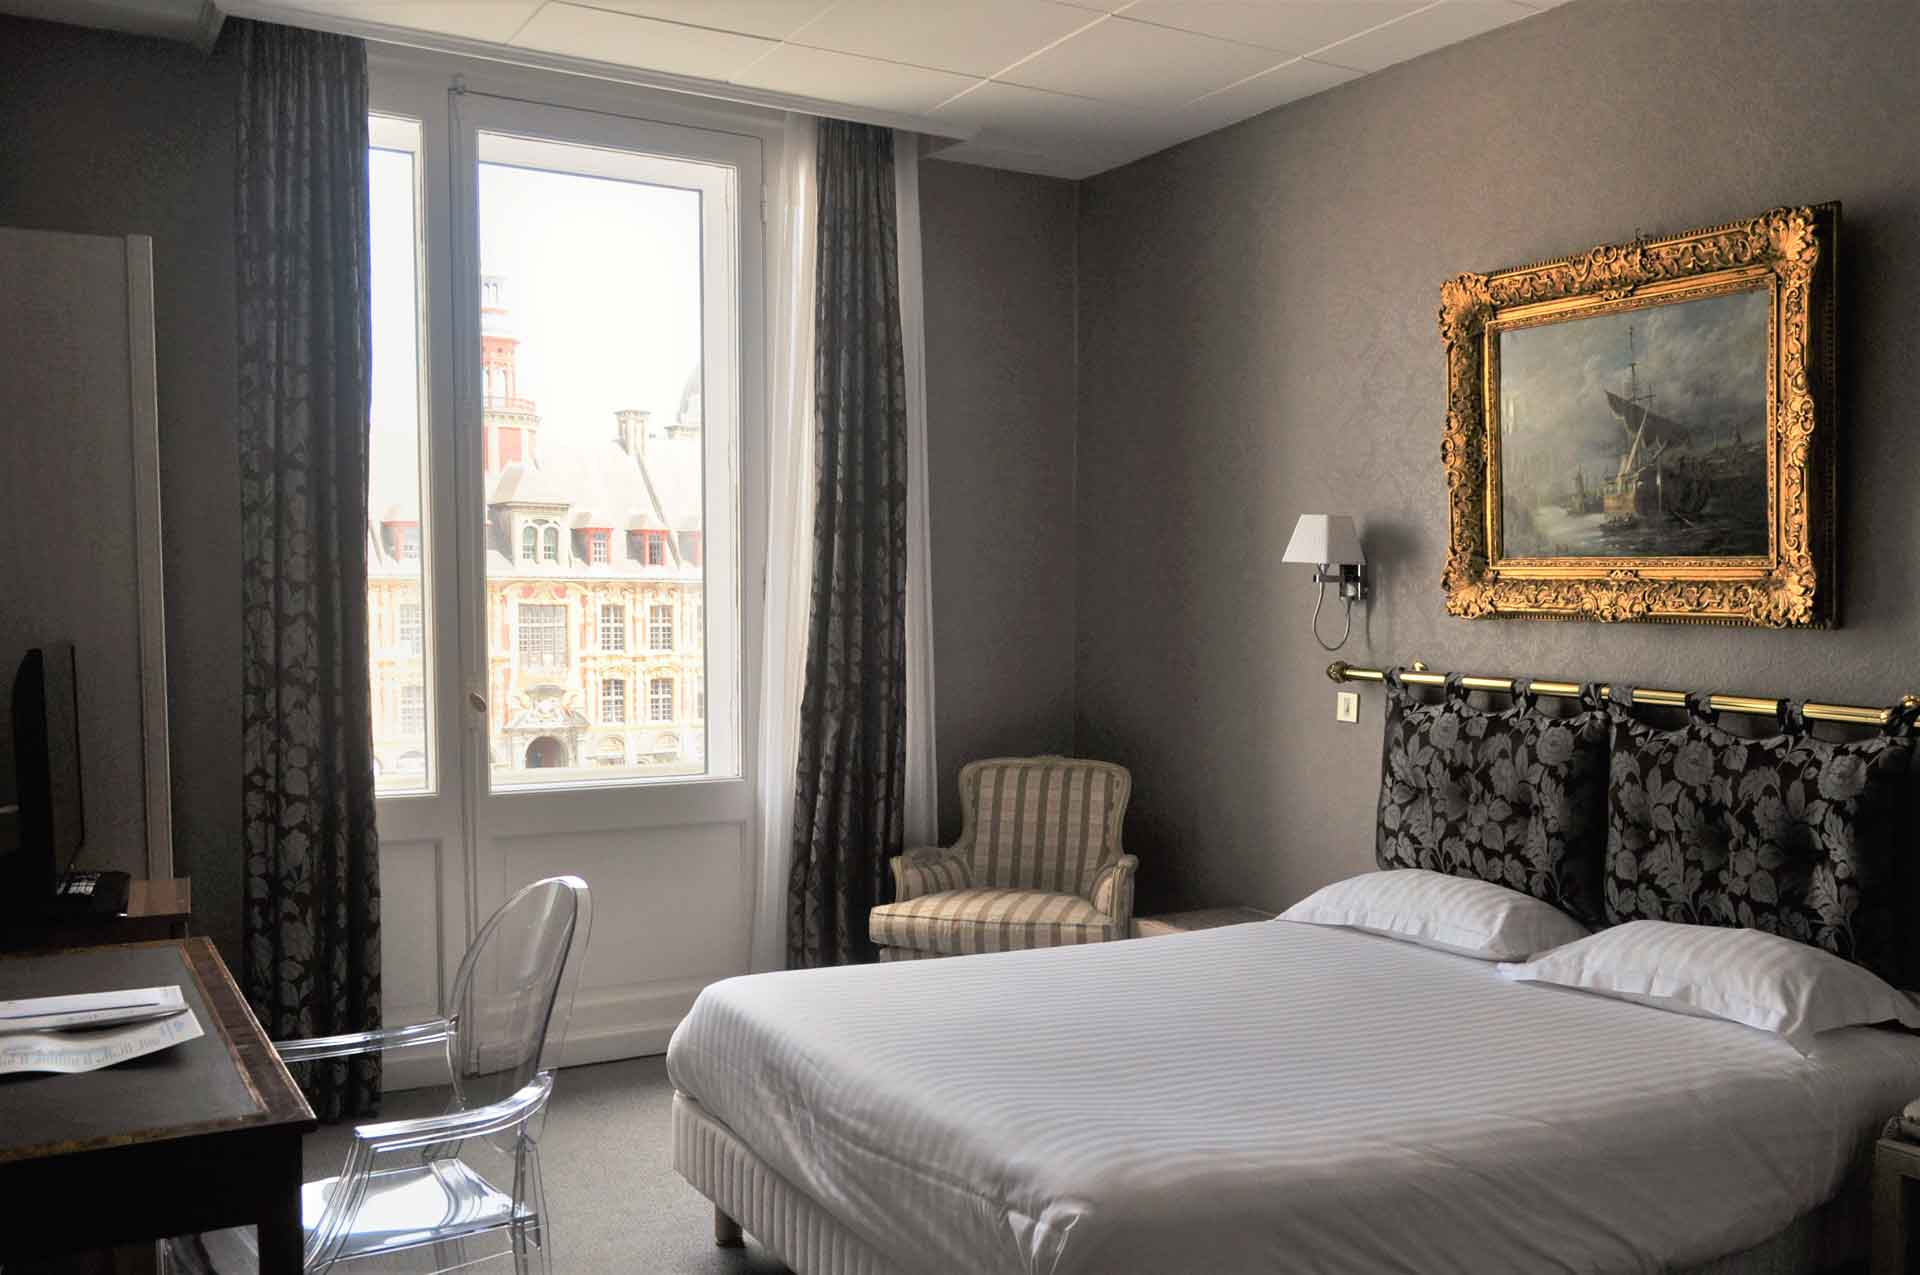 340/Grand Hotel Bellevue/Groupe_SLIH_-_Grand_Hotel_Bellevue_-_Chambre.jpg